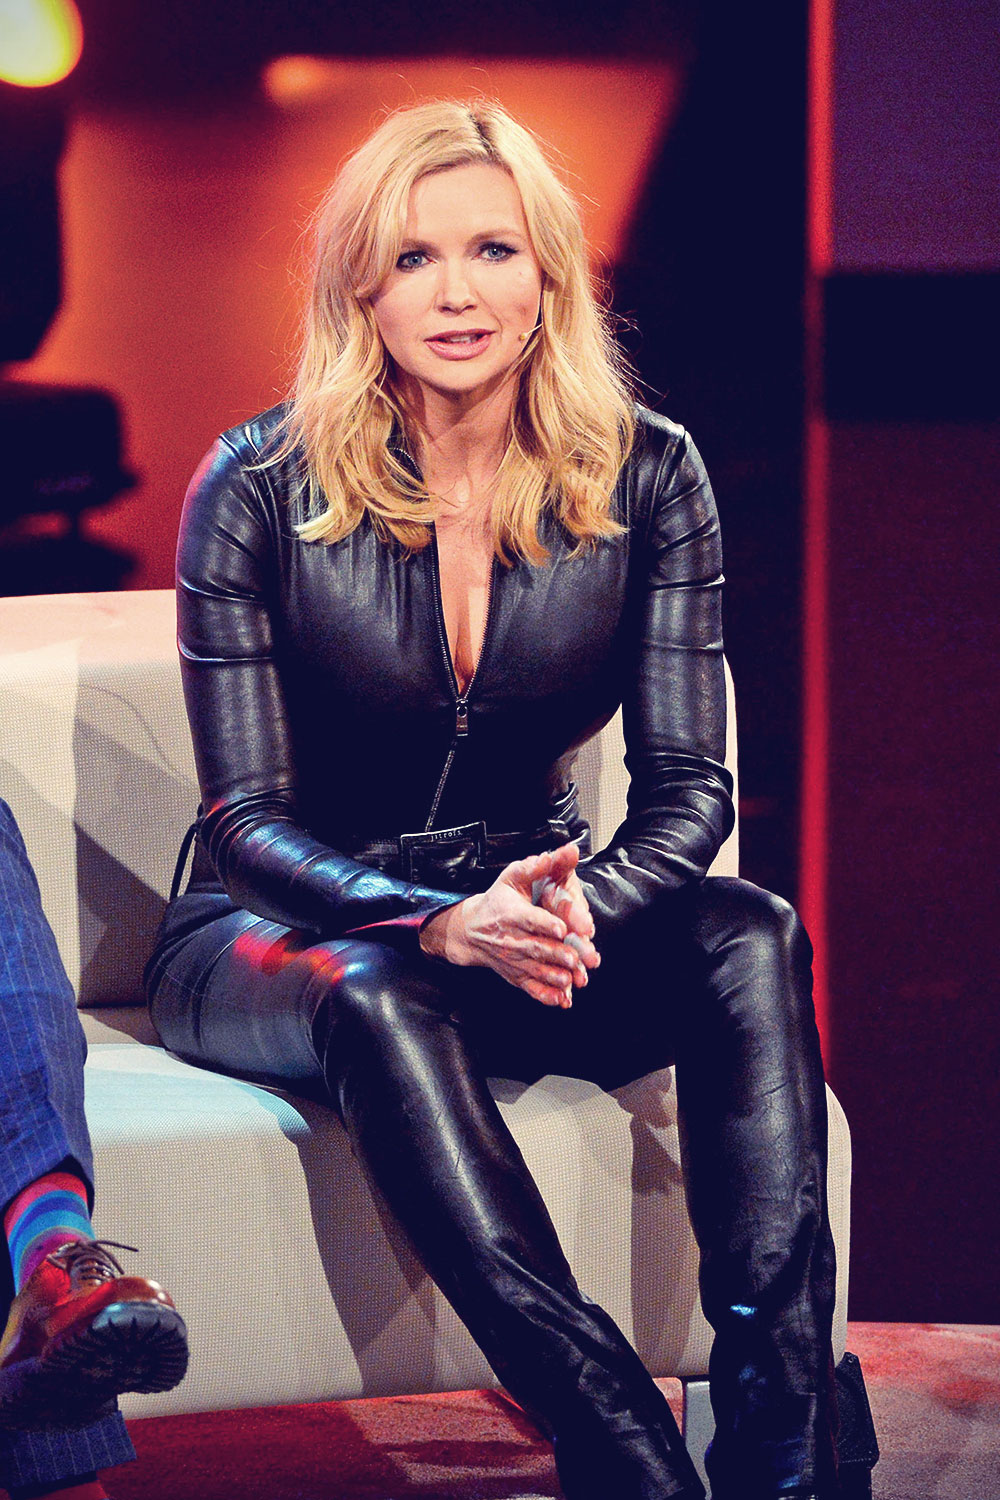 Veronica Ferres recording the RTL show Back to School ...